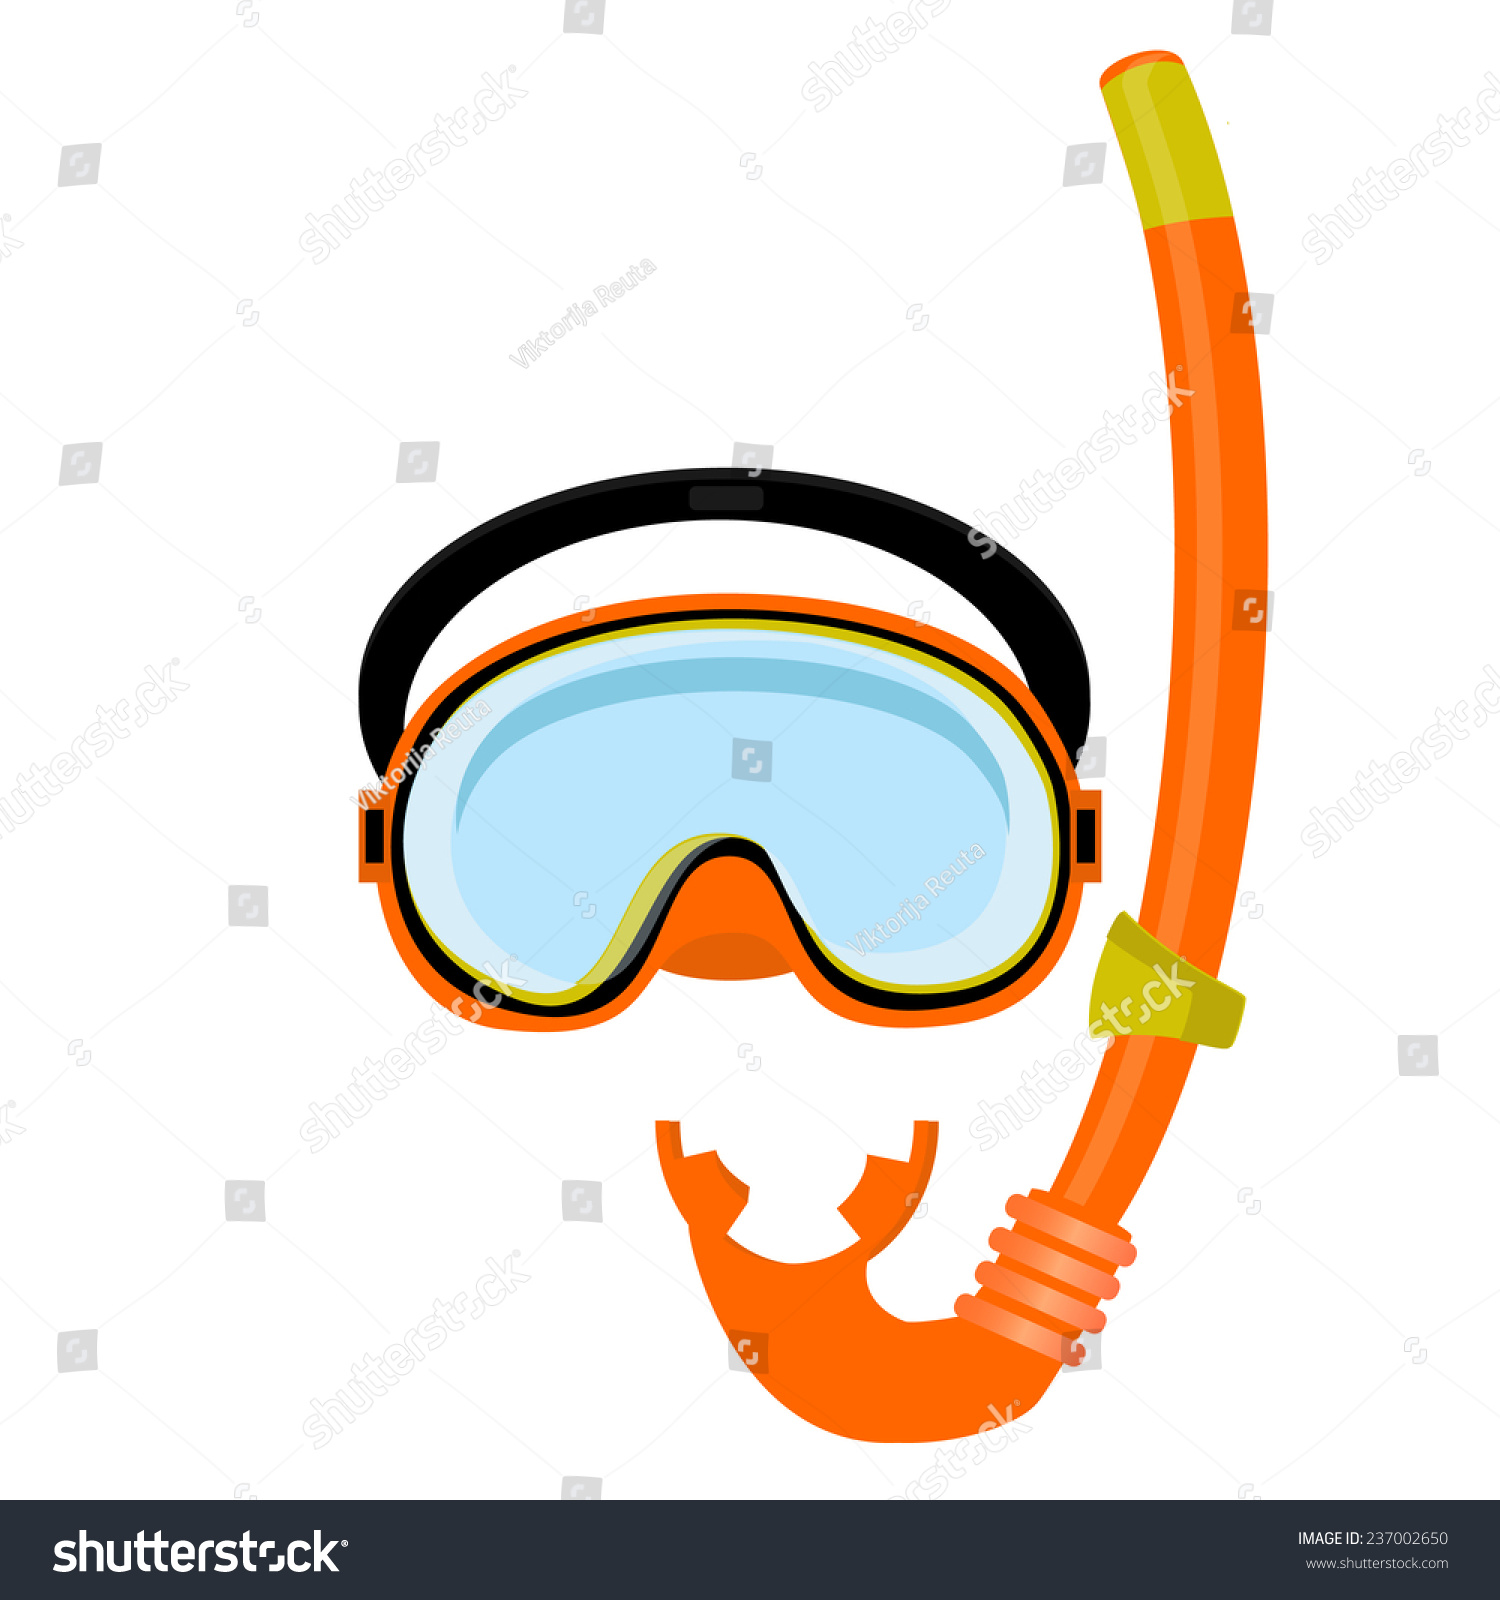 Orange diving mask diving tube swimming stock vector for Dive tube